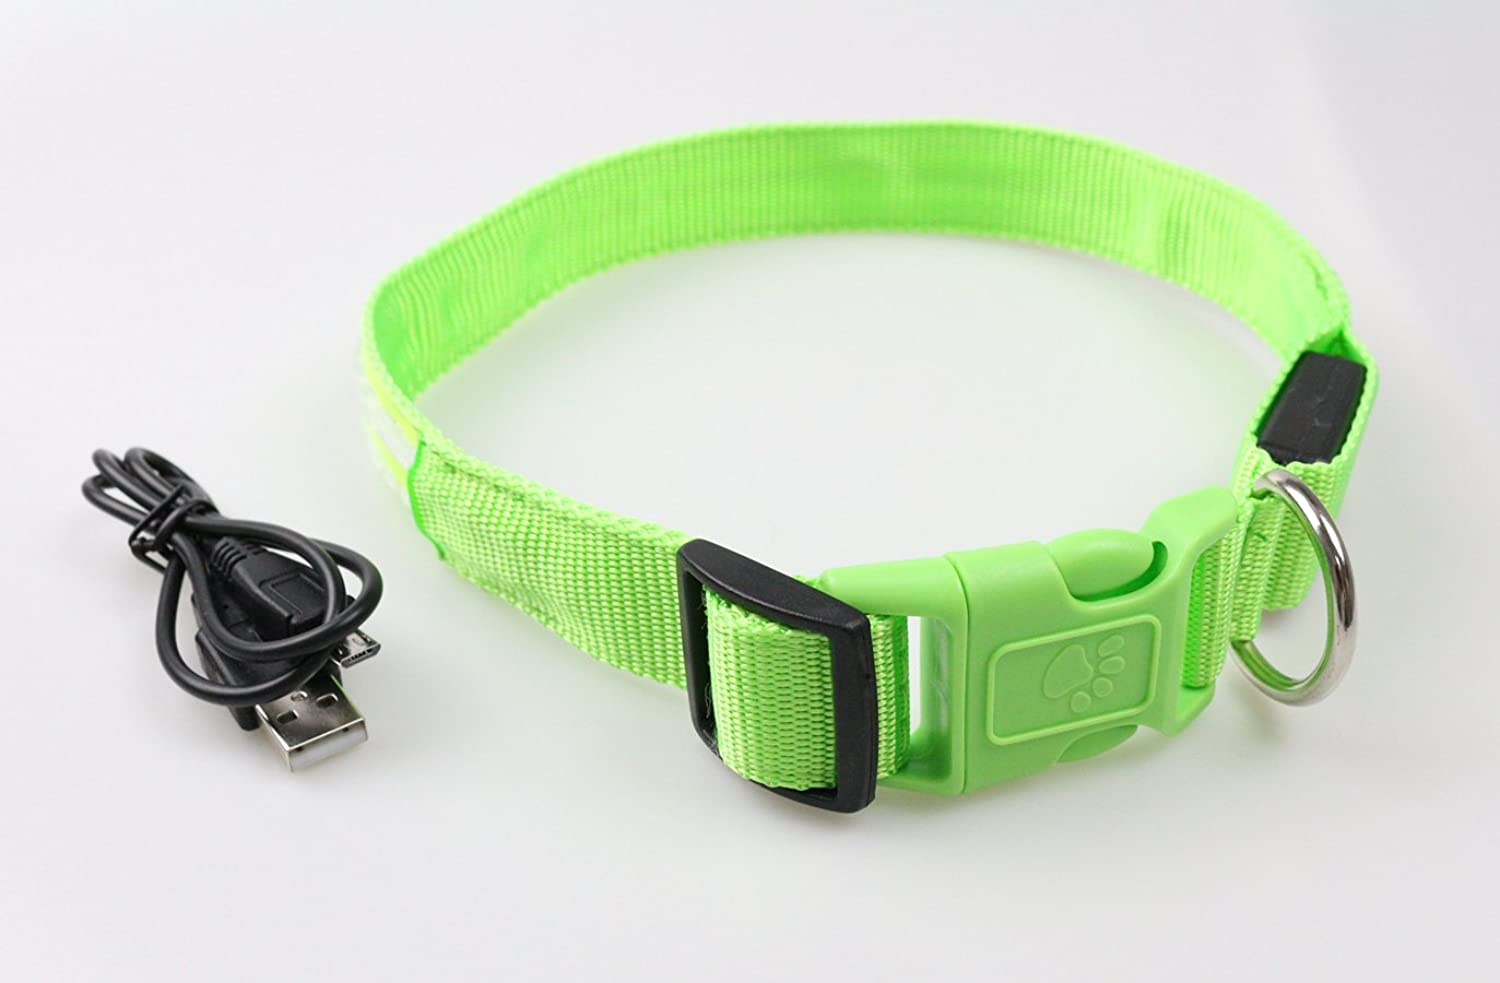 LovoIn LED Dog Collar, USB Rechargeable, Super Bright, Double Fiber Optics LED Rings, Weather Resistance, 3 Flashing Modes, 5 colors (Large, Green)